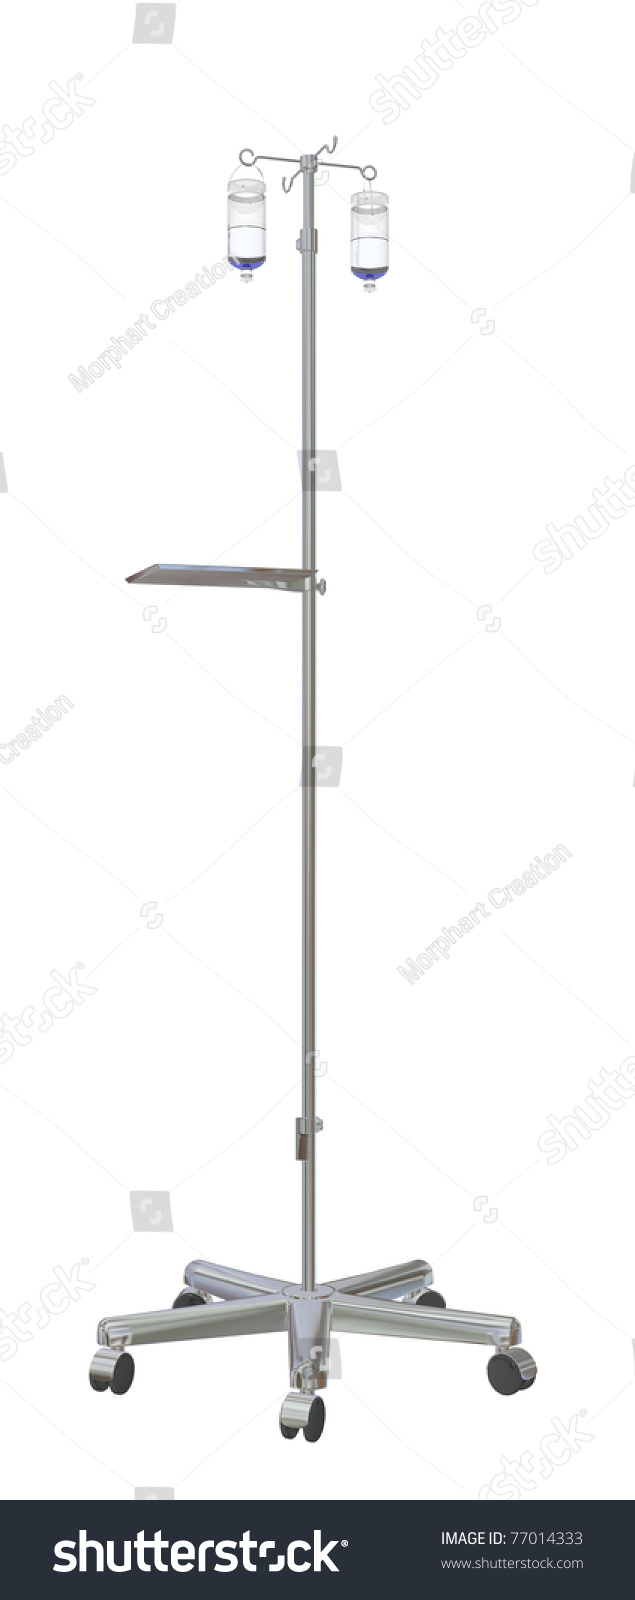 Walking Patient Iv Pole Clip Art